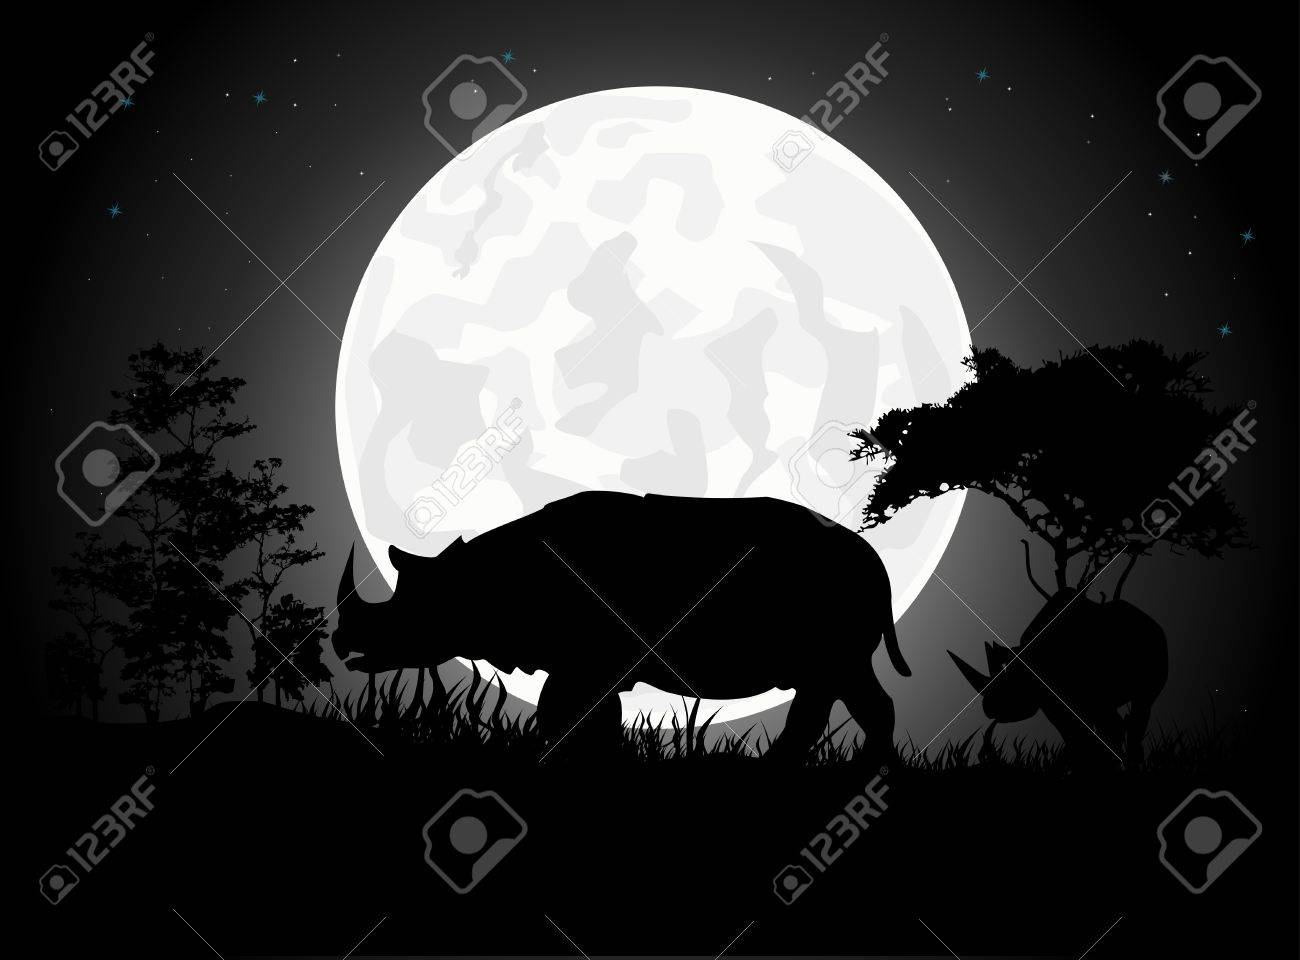 Beautiful Rhino silhouettes with giant moon background Stock Vector - 15359893